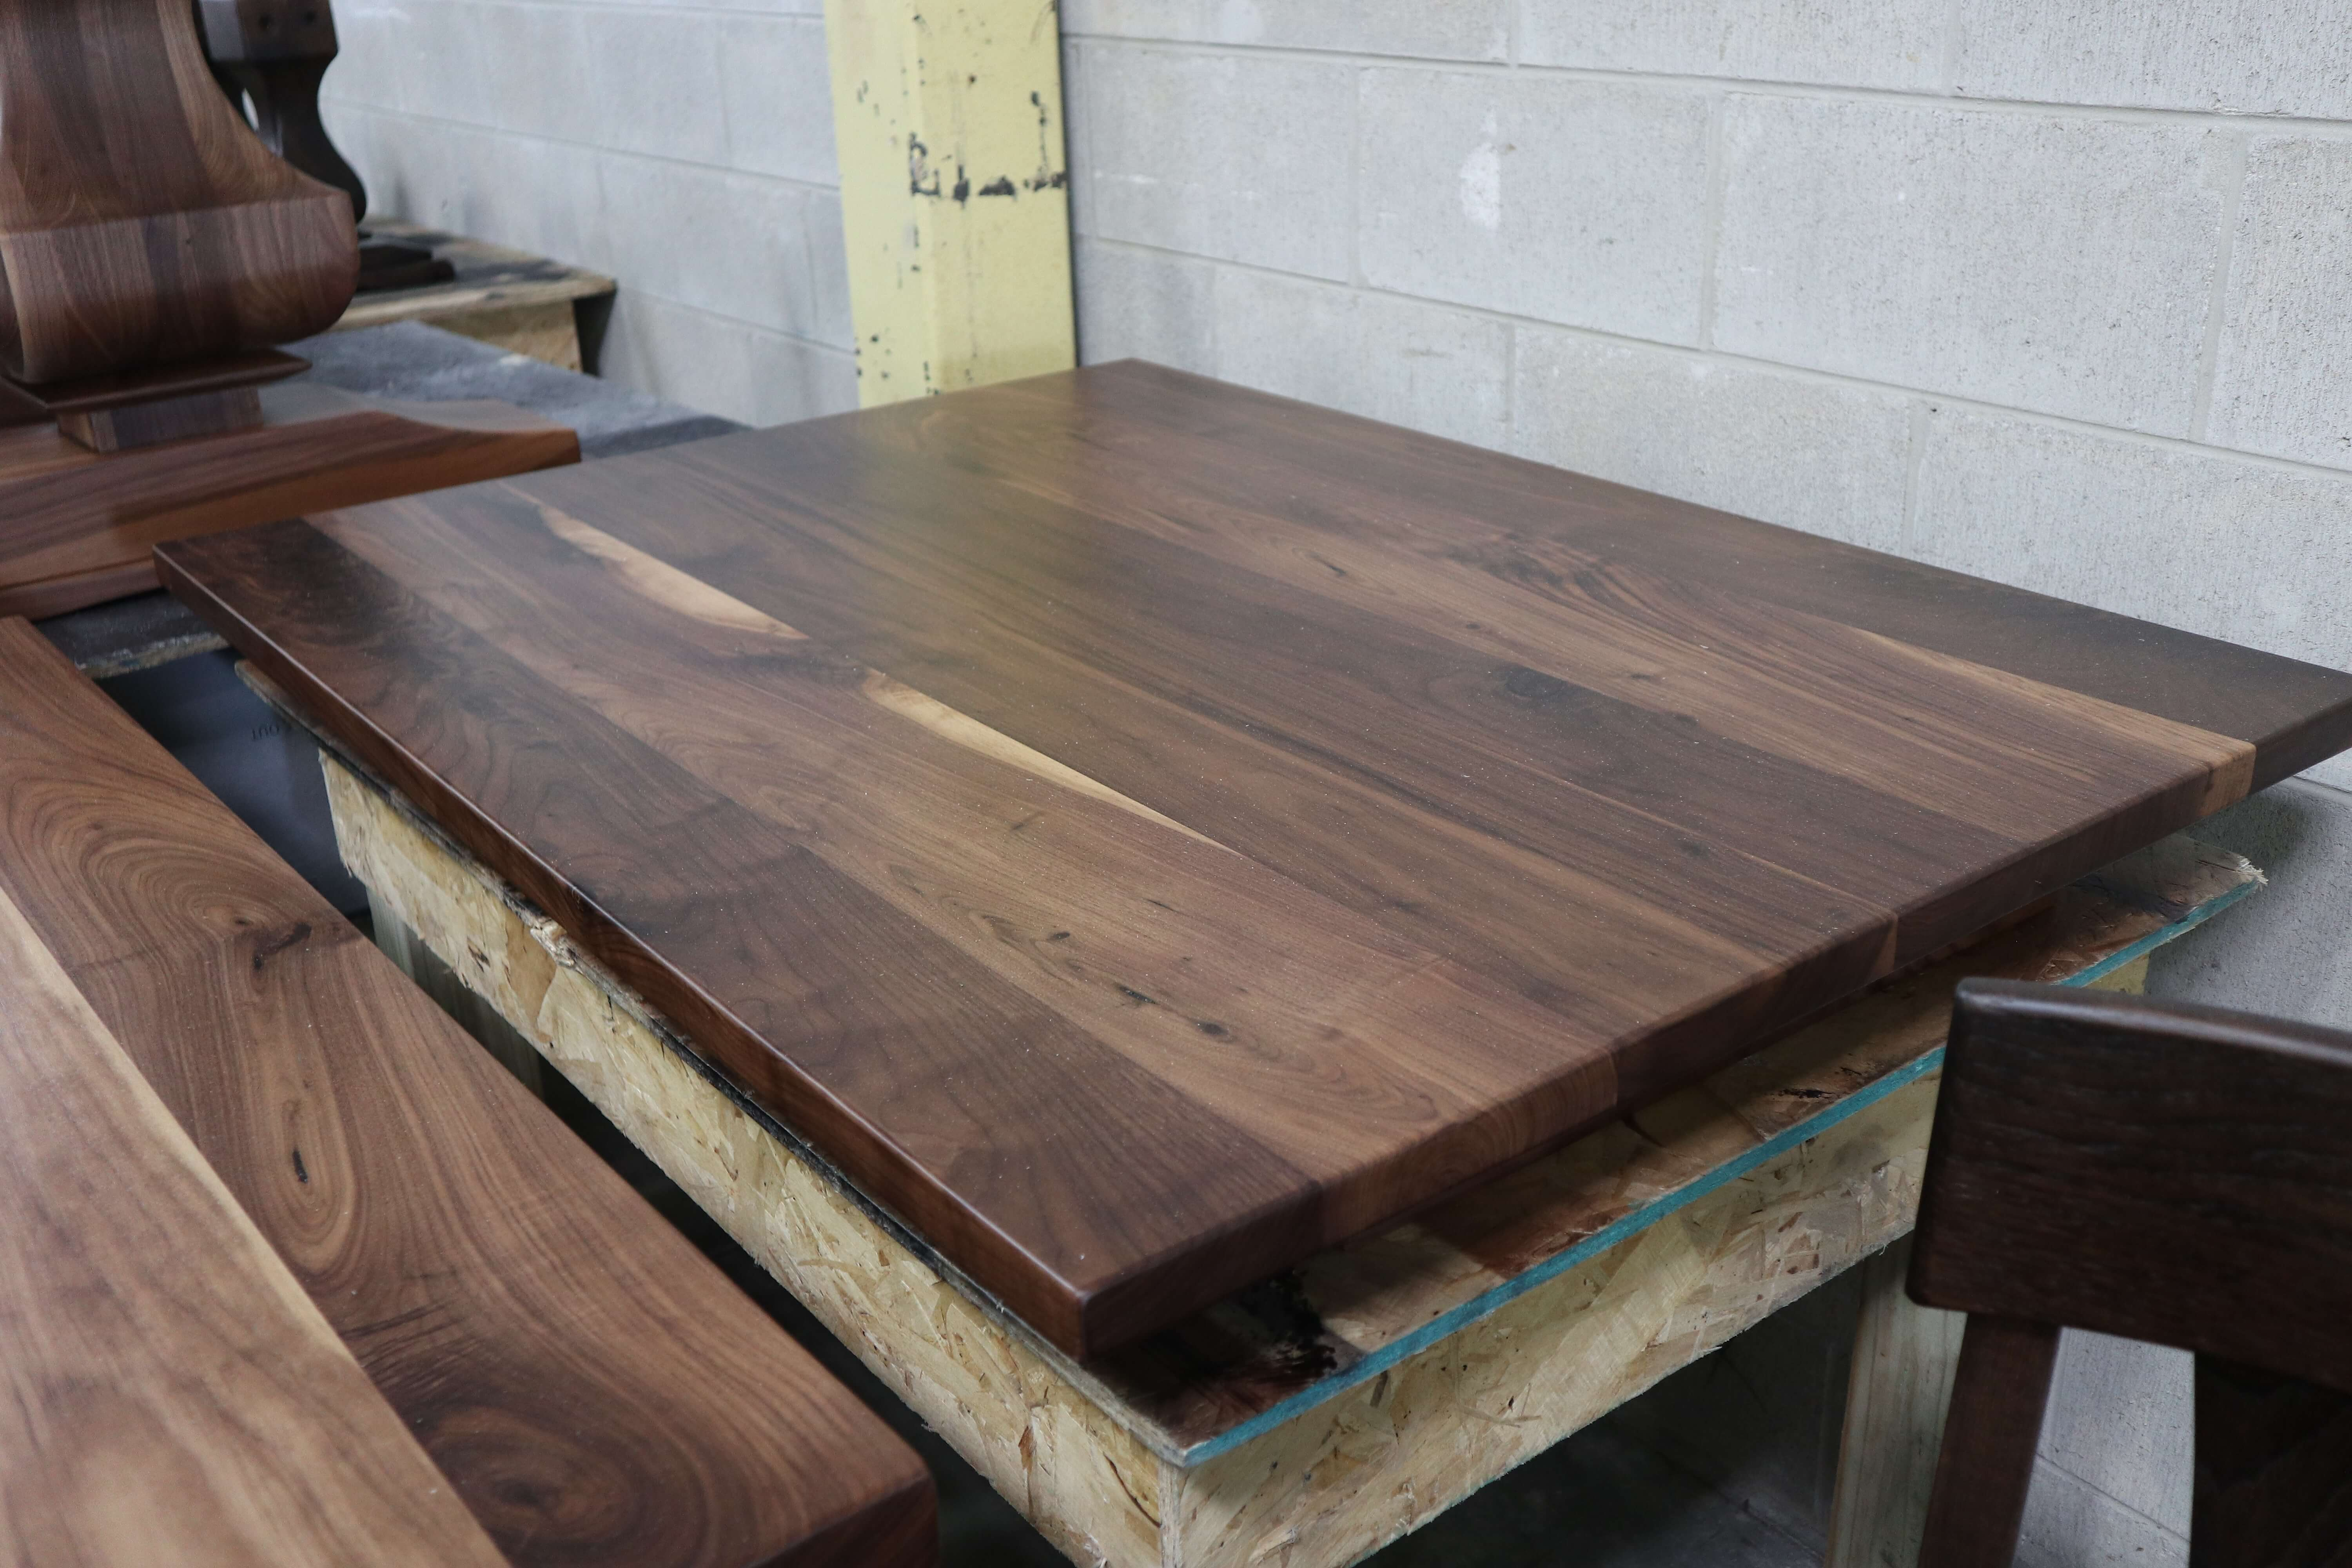 Table we sent using our shipping and delivery options.